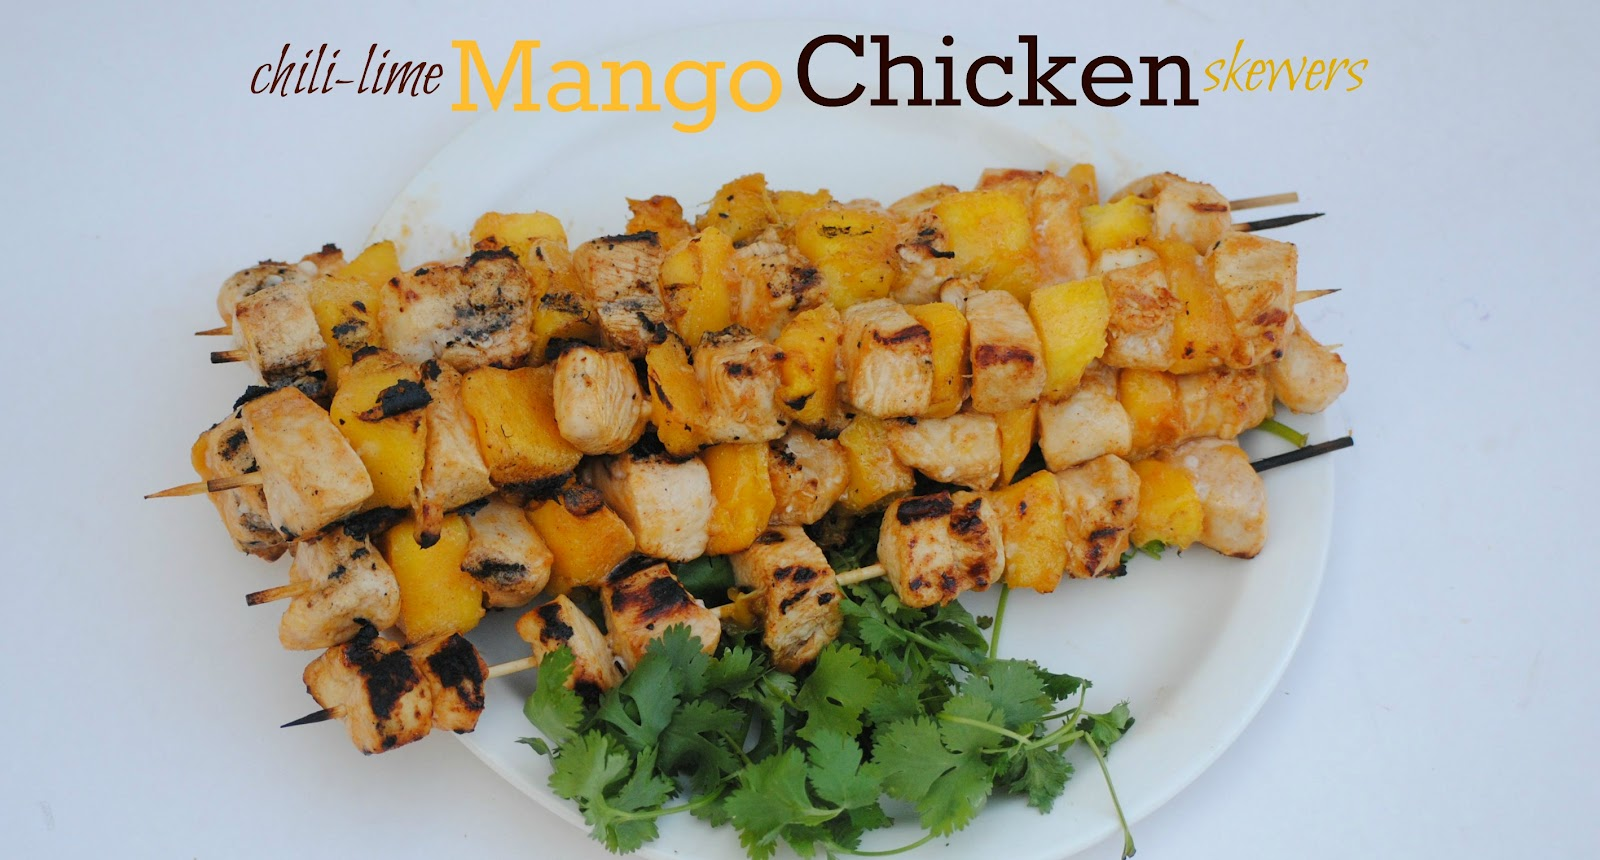 The Farm Girl Recipes: Chili-Lime Mango Chicken Skewers